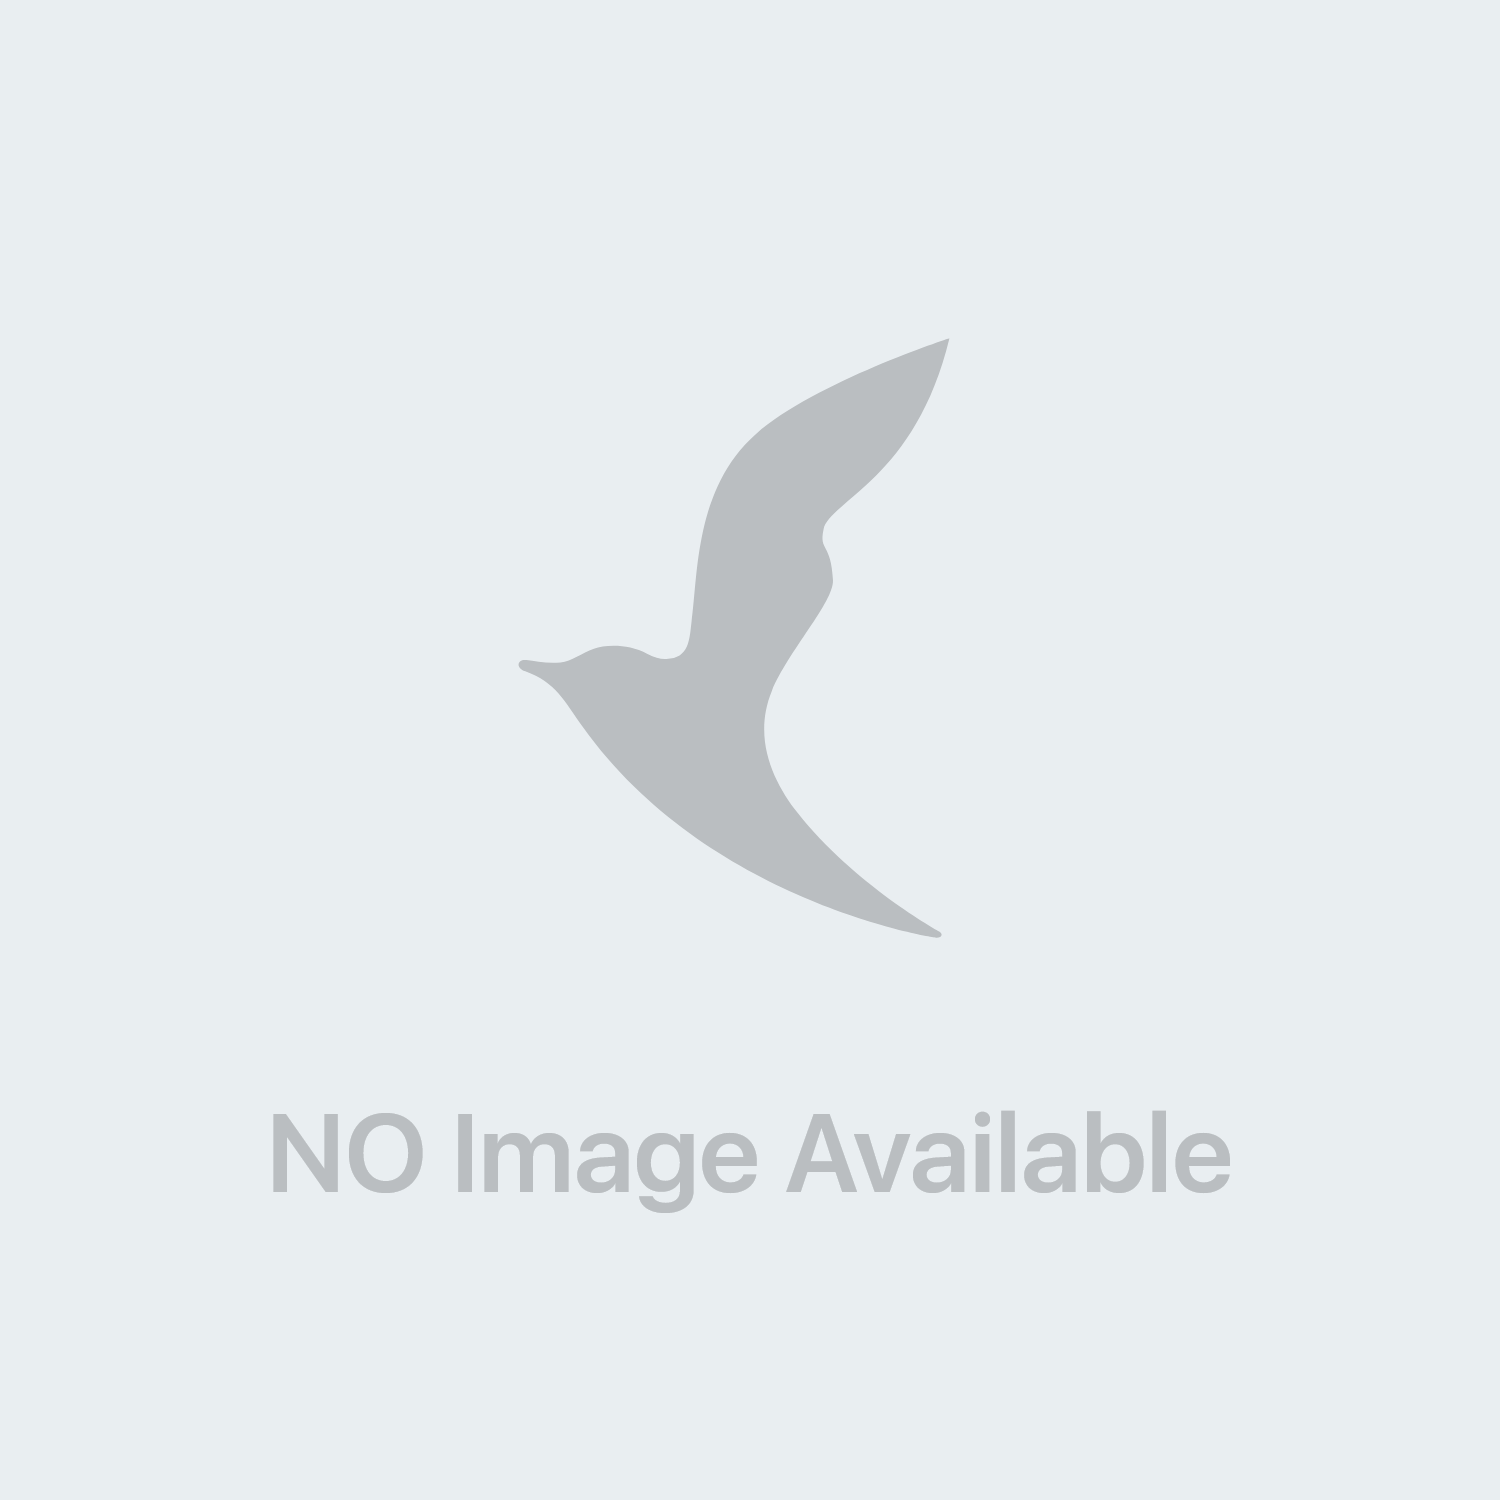 Linea Farmacia Crema Talloni Screpolati Urea 10% 75 ml